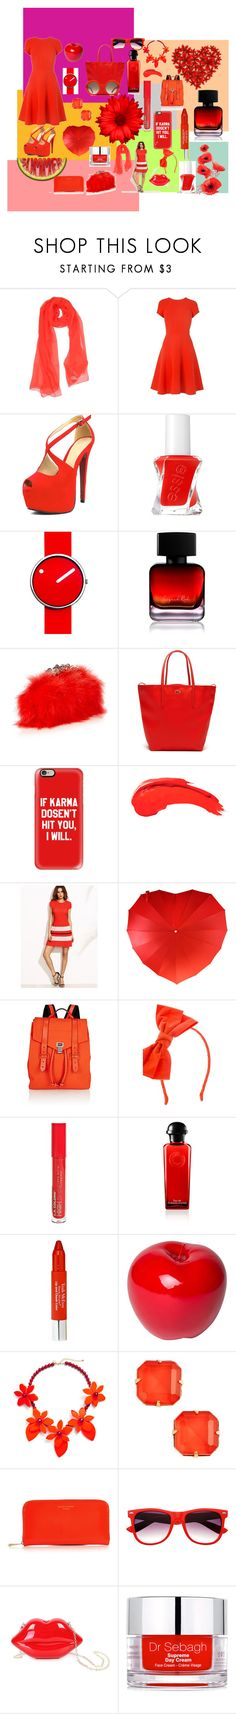 """""""Dinner with Friend Look by BIANCA"""" by bianca-maria-poroschianu ❤ liked on Polyvore featuring Blumarine, Essie, Rosendahl, The Collection by Phuong Dang, Alexander McQueen, Lacoste, Casetify, Anastasia Beverly Hills, Proenza Schouler and Johnny Loves Rosie"""